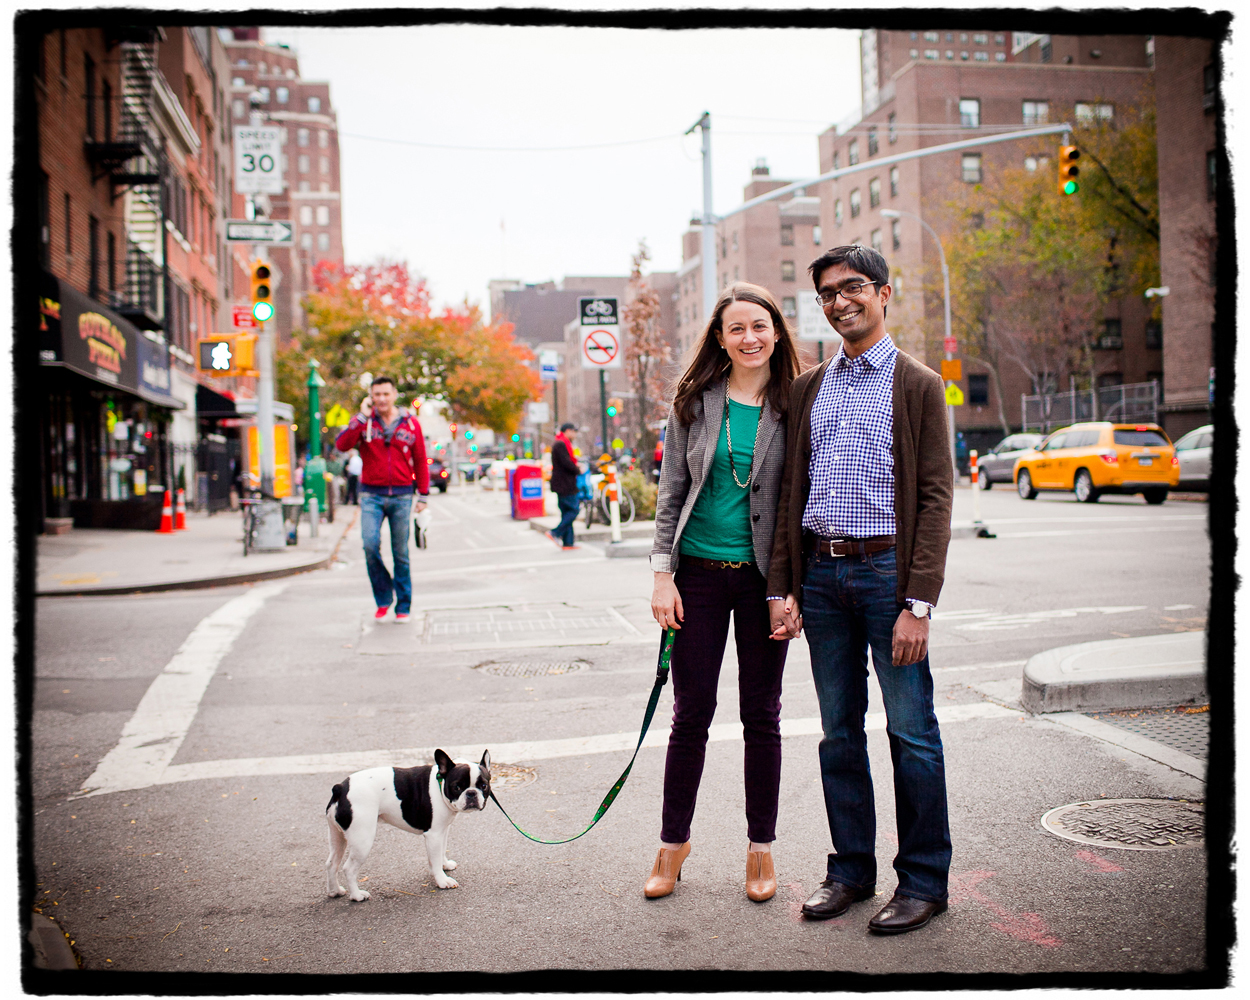 Engagement Portrait: Katie & Sharmilan take their sweet puppy, Wilbur, for a walk around their neighborhood in Chelsea.